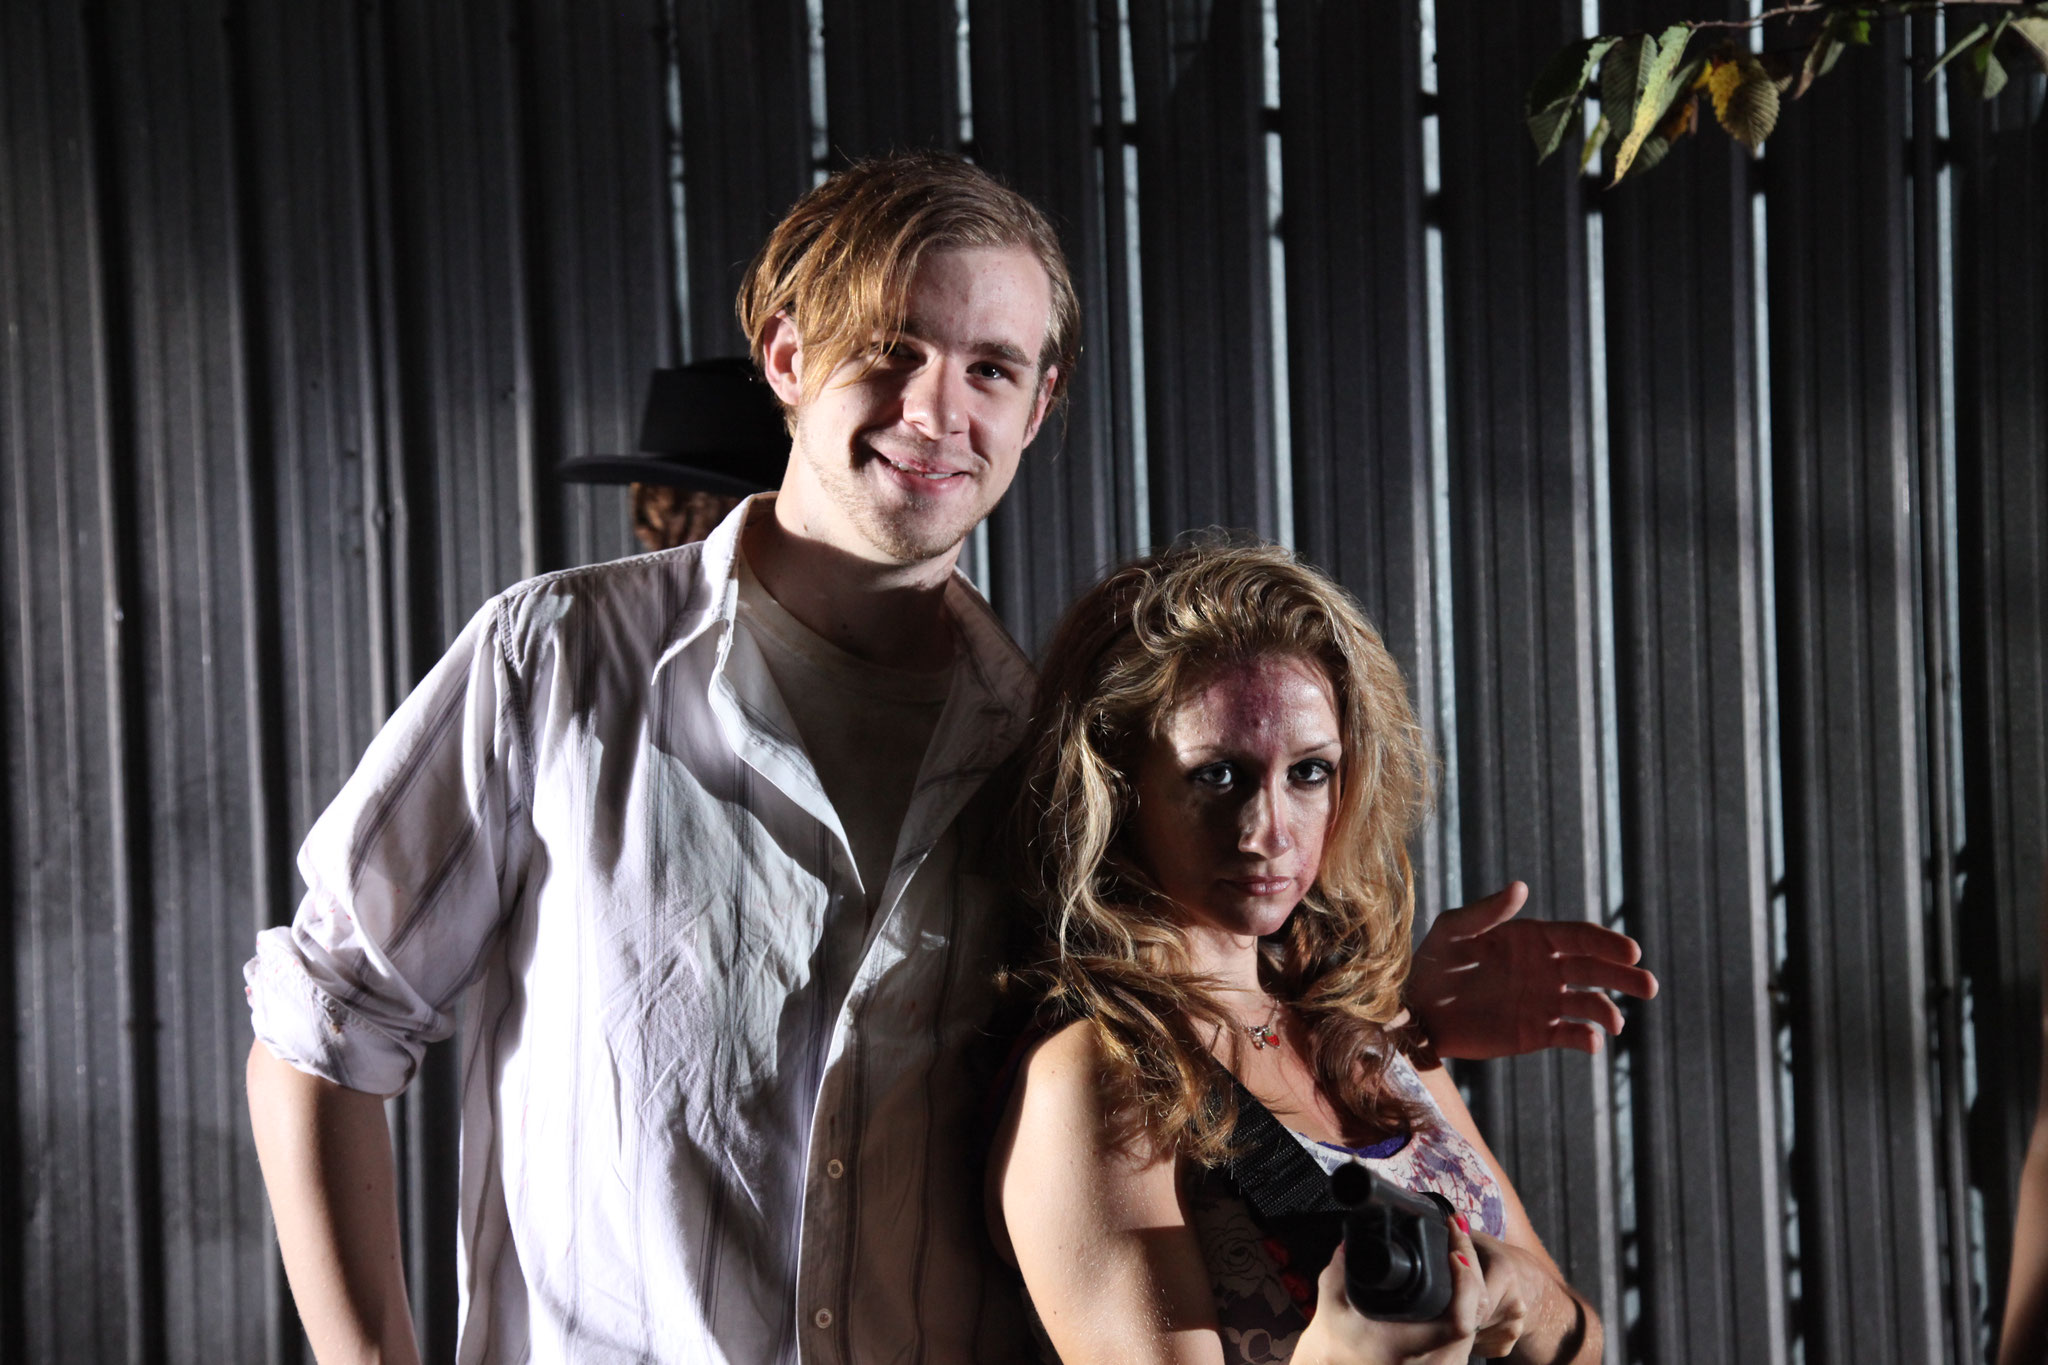 Hank (Shaun Vain) and Lenore (Fiona Domenica).